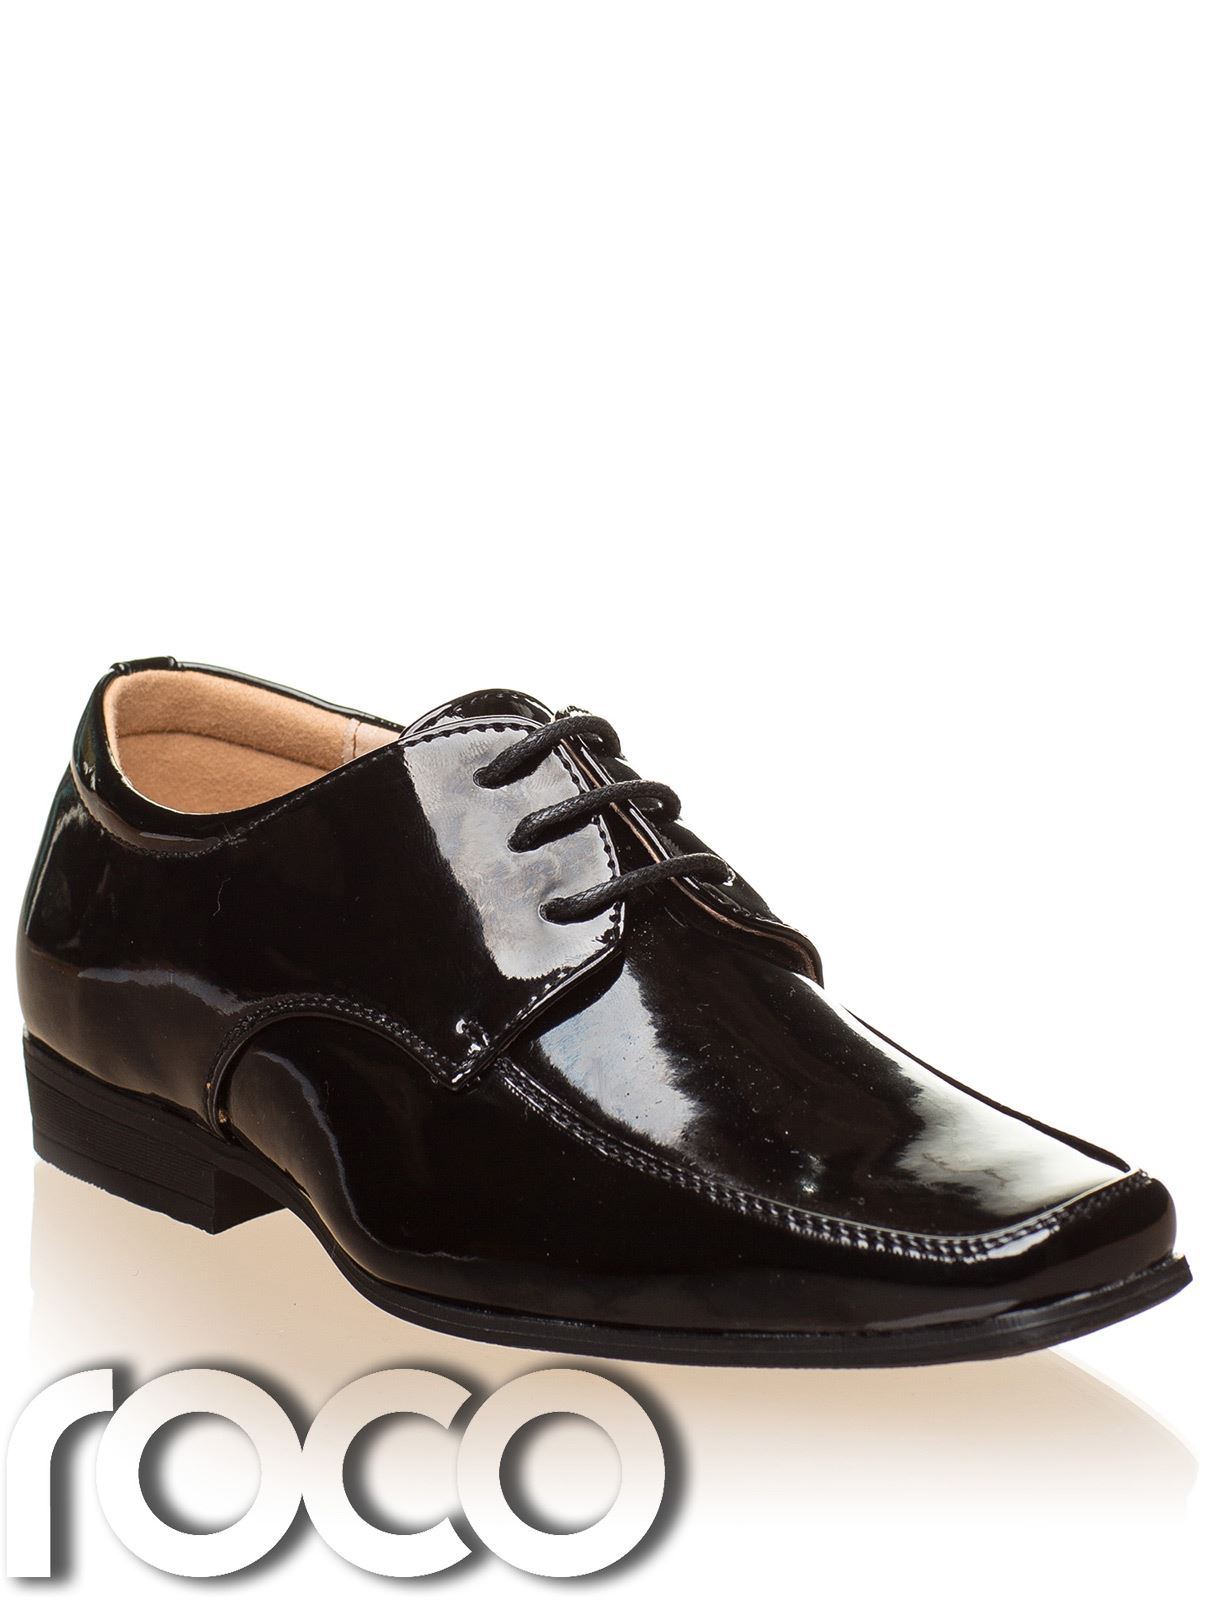 Find great deals on eBay for black and brown shoes. Shop with confidence.